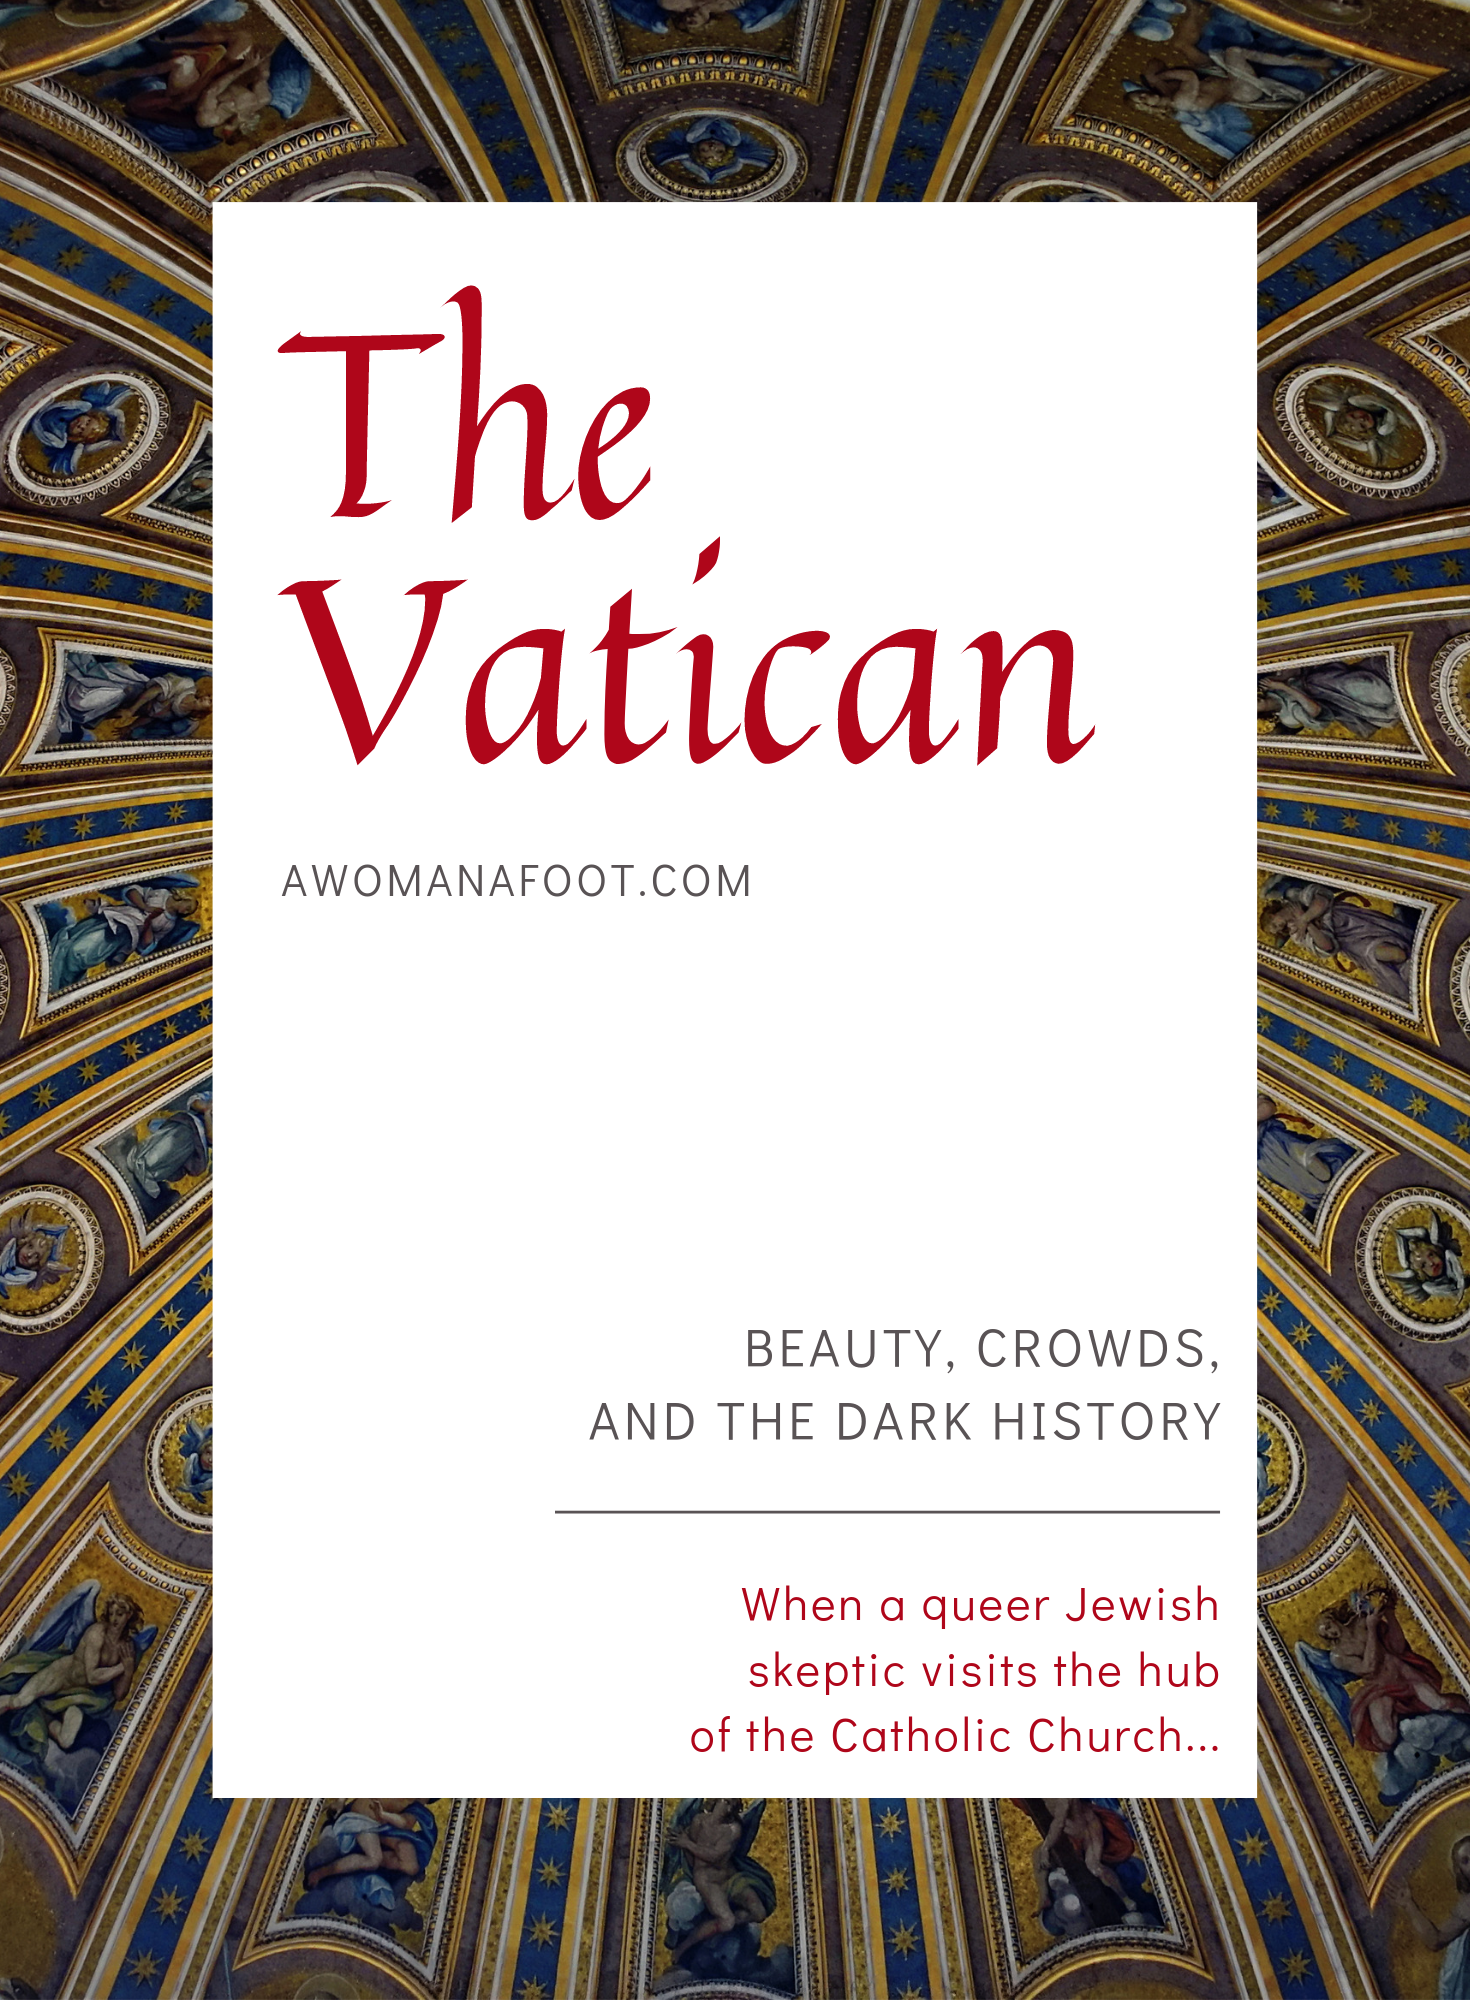 A very personal account of my visit to the Vatican - facing centuries of beauty, mastery and dark history of the Catholic Church. #Rome | #Vatican | #Italy | #CatholicChurch | #QueerHistory #DarkHistory | Visiting the Vatican | What to do in Rome | Must-see in Rome | awomanafoot.com